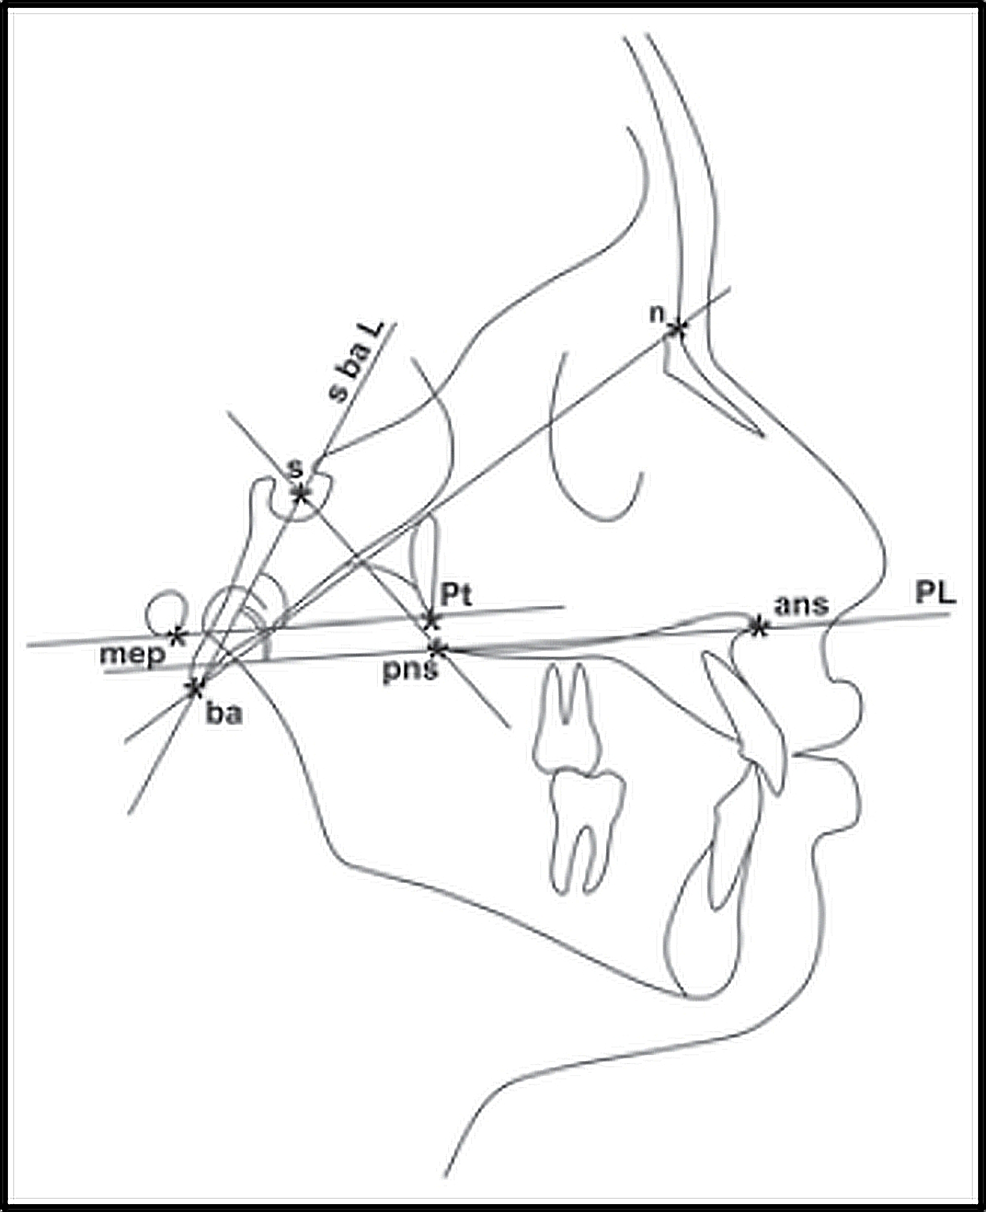 Cephalometric-landmarks,-linear-and-angular-measurements